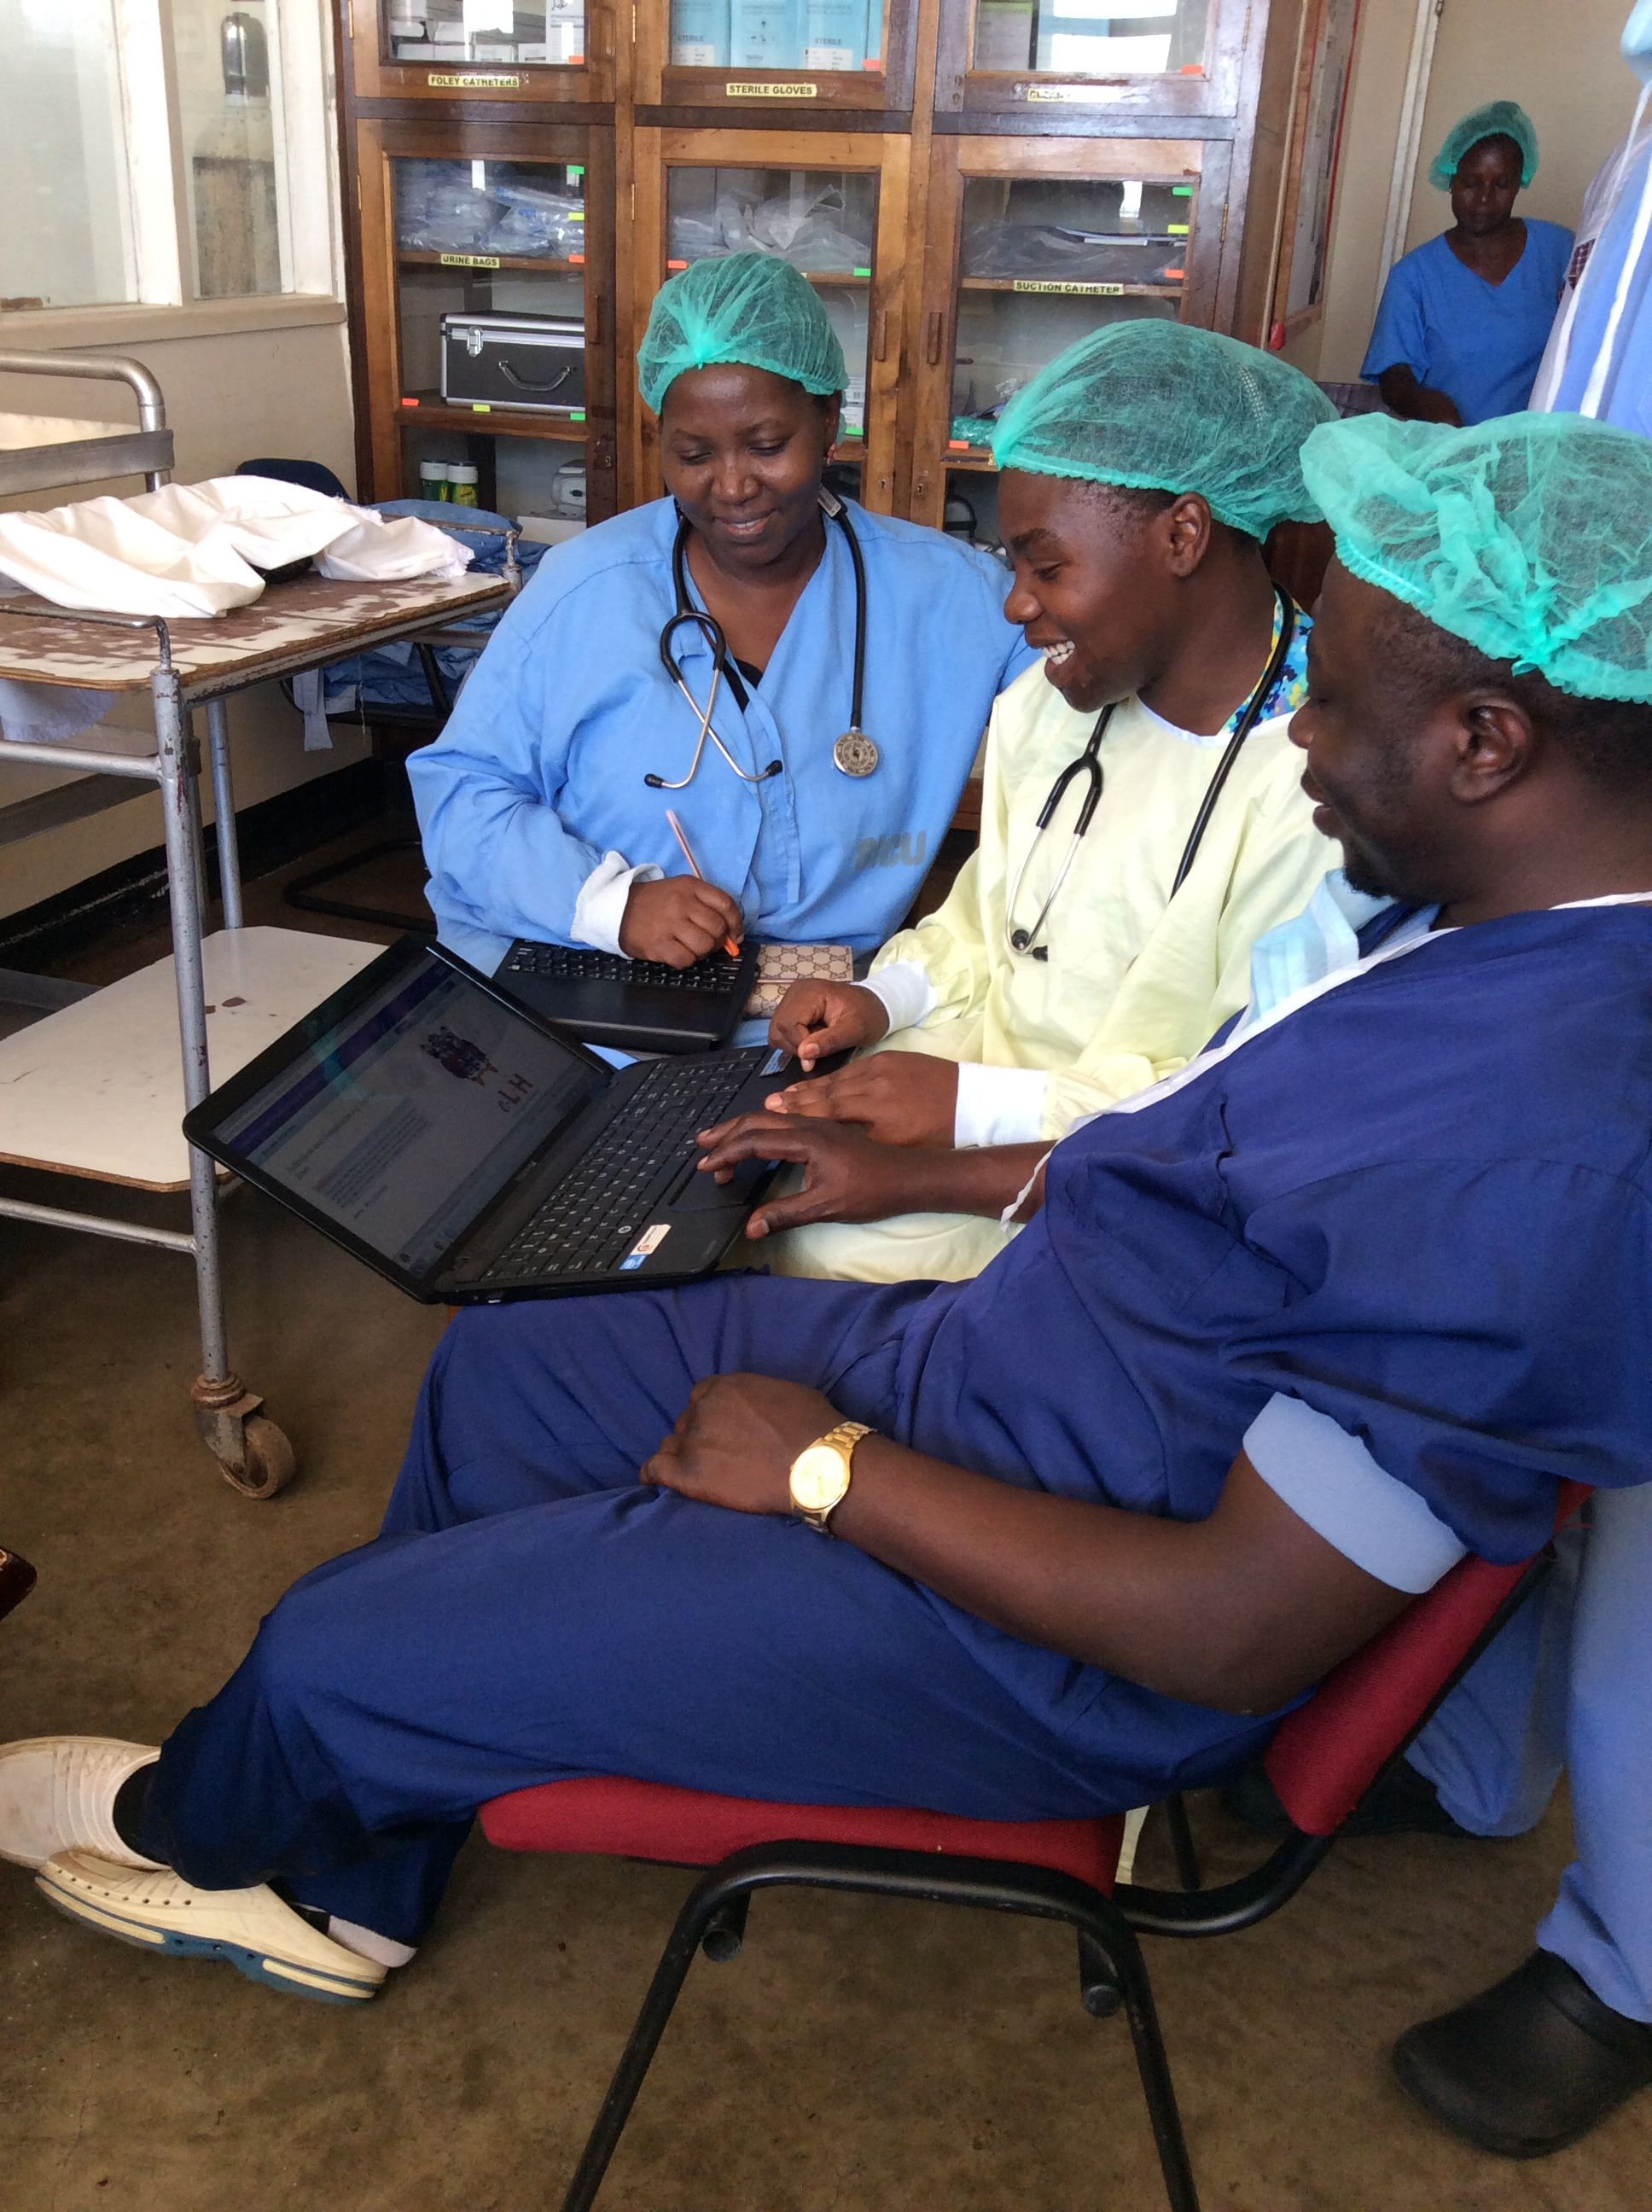 e-Learning Anaesthesia goes global